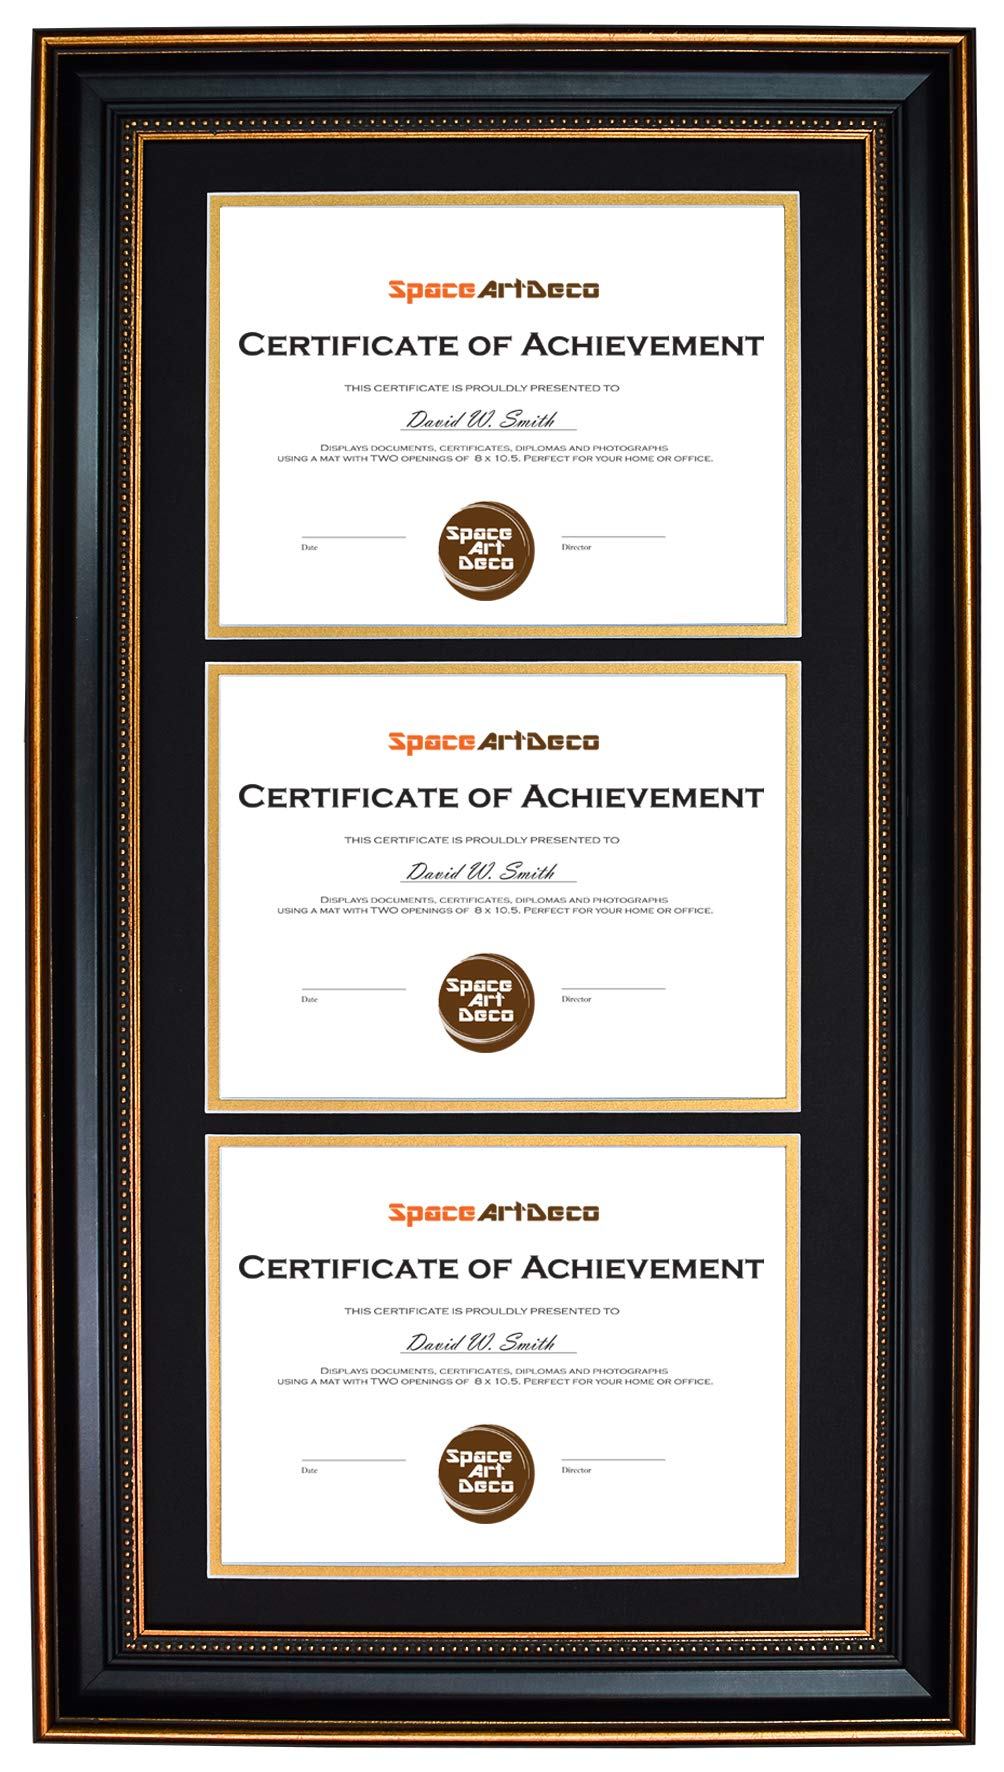 Space Art Deco Ornate Gold Black Design Vertical Triple Certificate/Diploma Frame - Black Over Gold Double Mat - for Three 8.5x11 Certificates and Diplomas- Sawtooth Hangers - Wall Mount (Portrait) by Space Art Deco (Image #1)